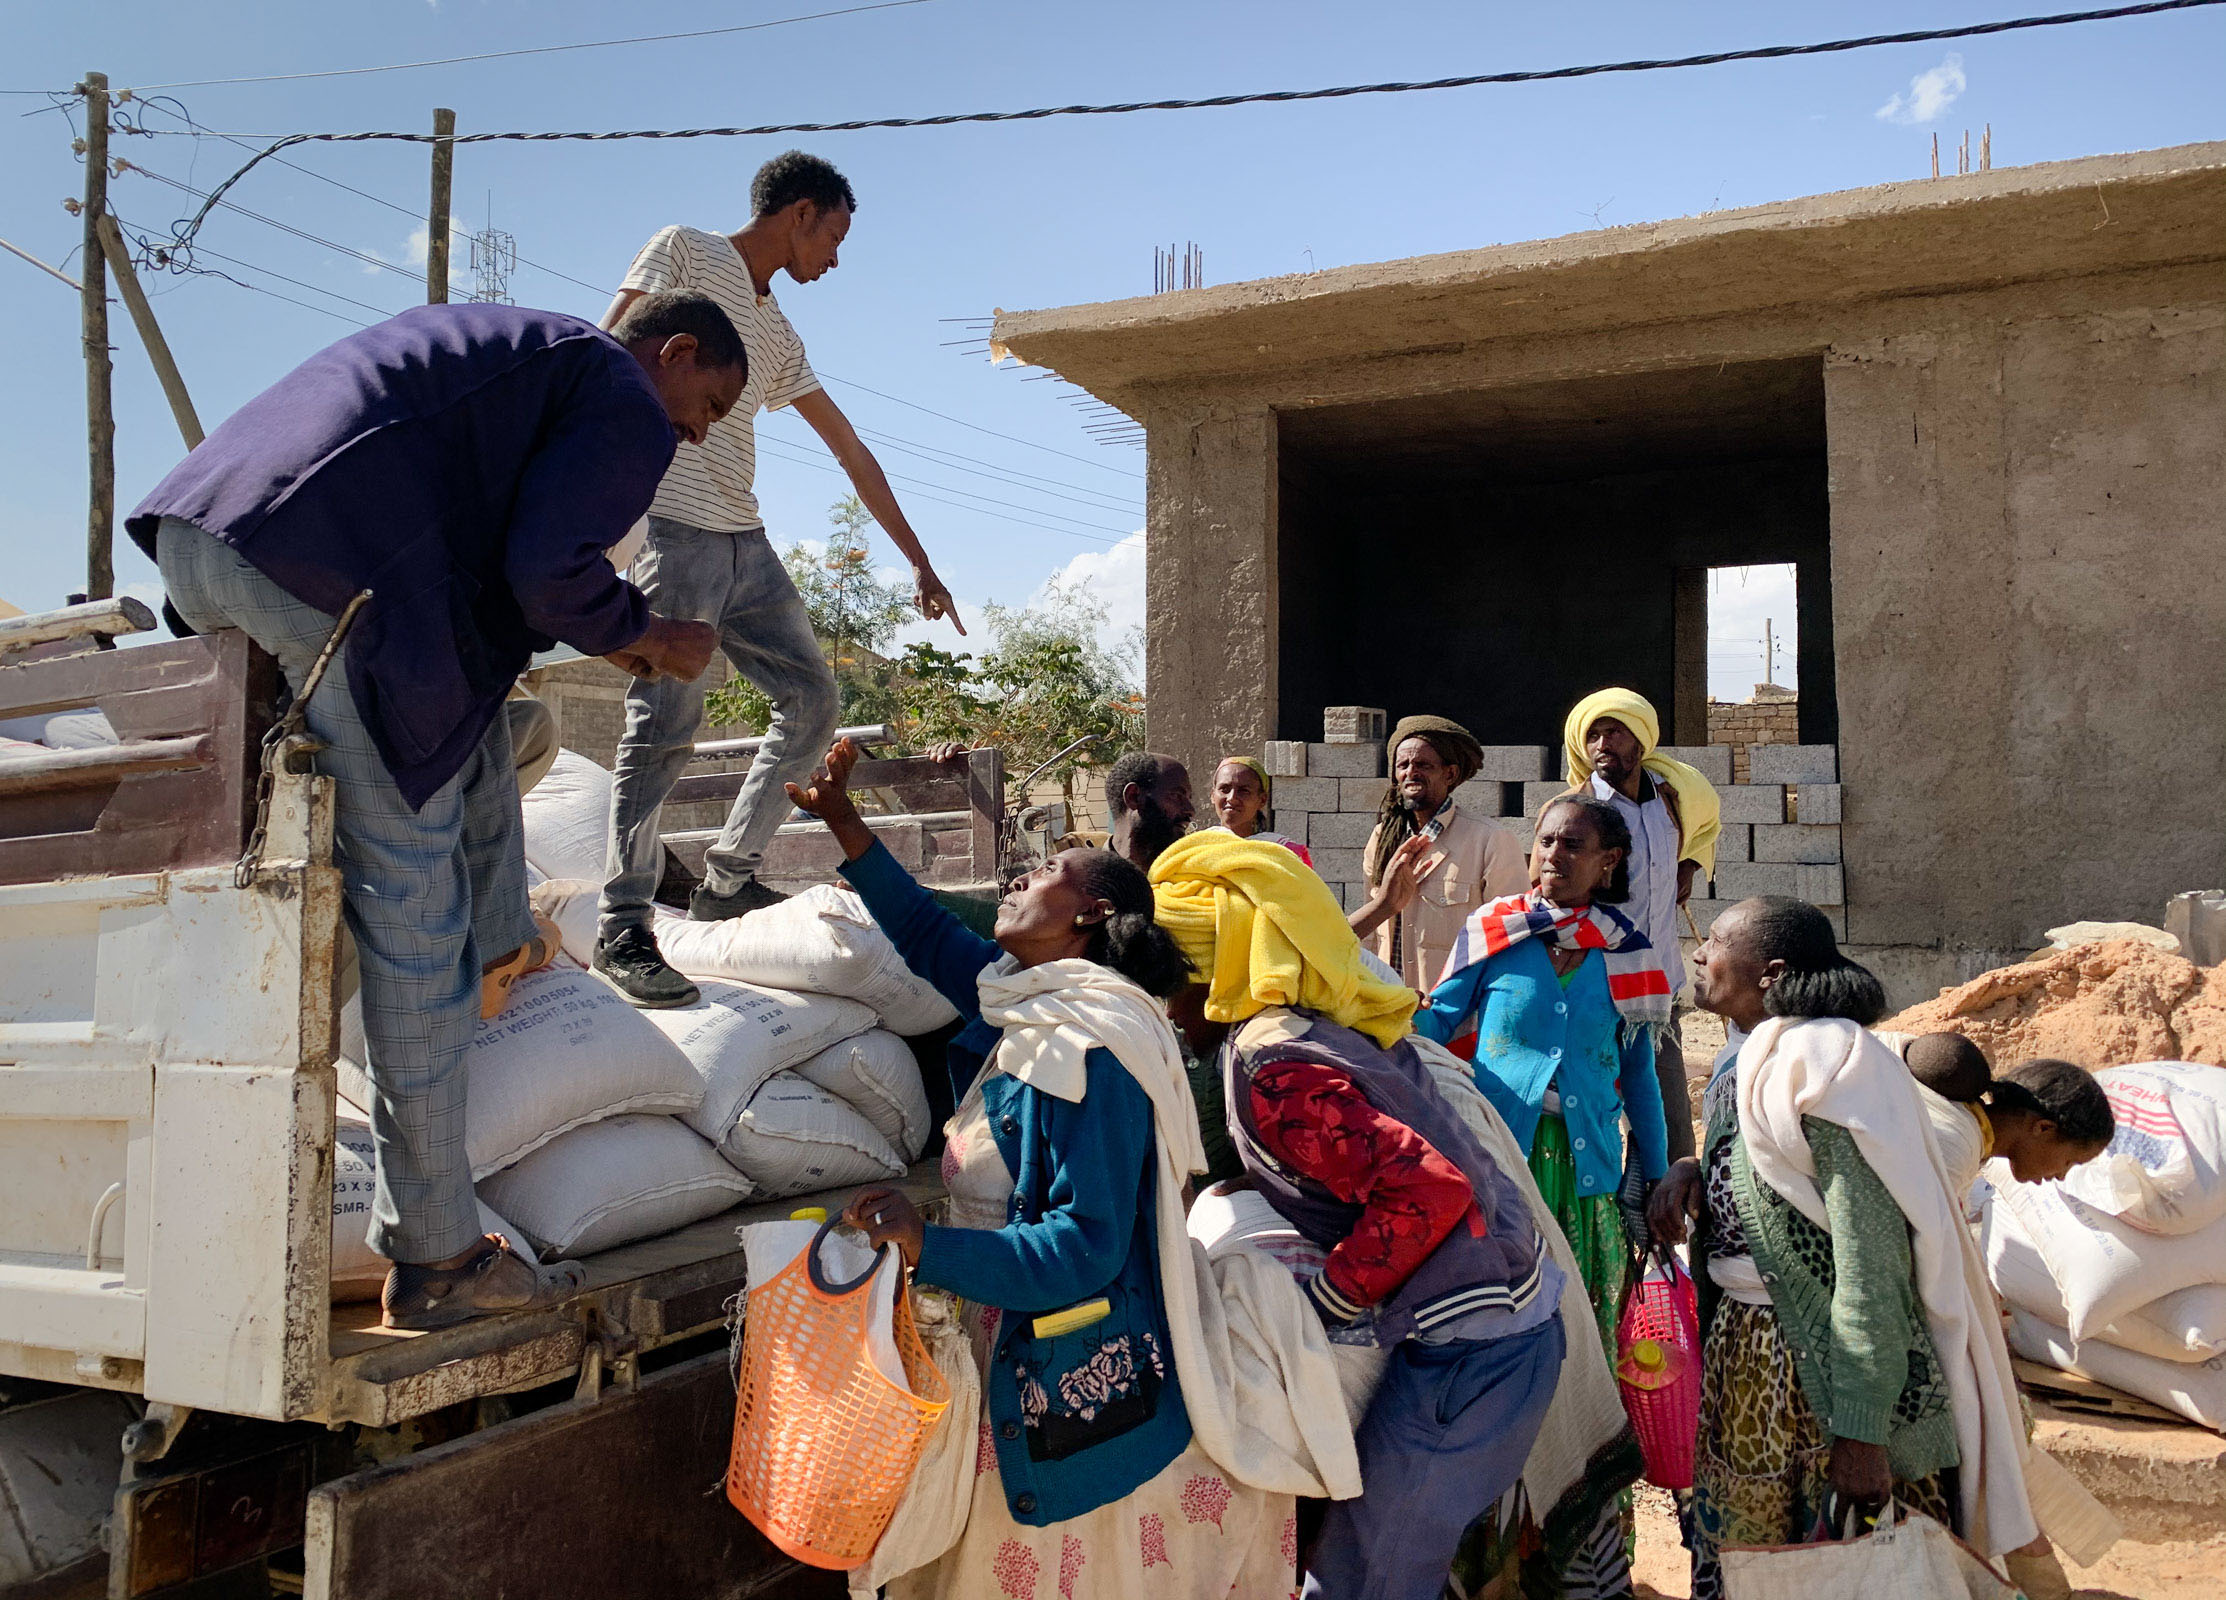 Top House Foreign Affairs member calls for sanctions in Tigray after CNN report shows military forces blocking aid